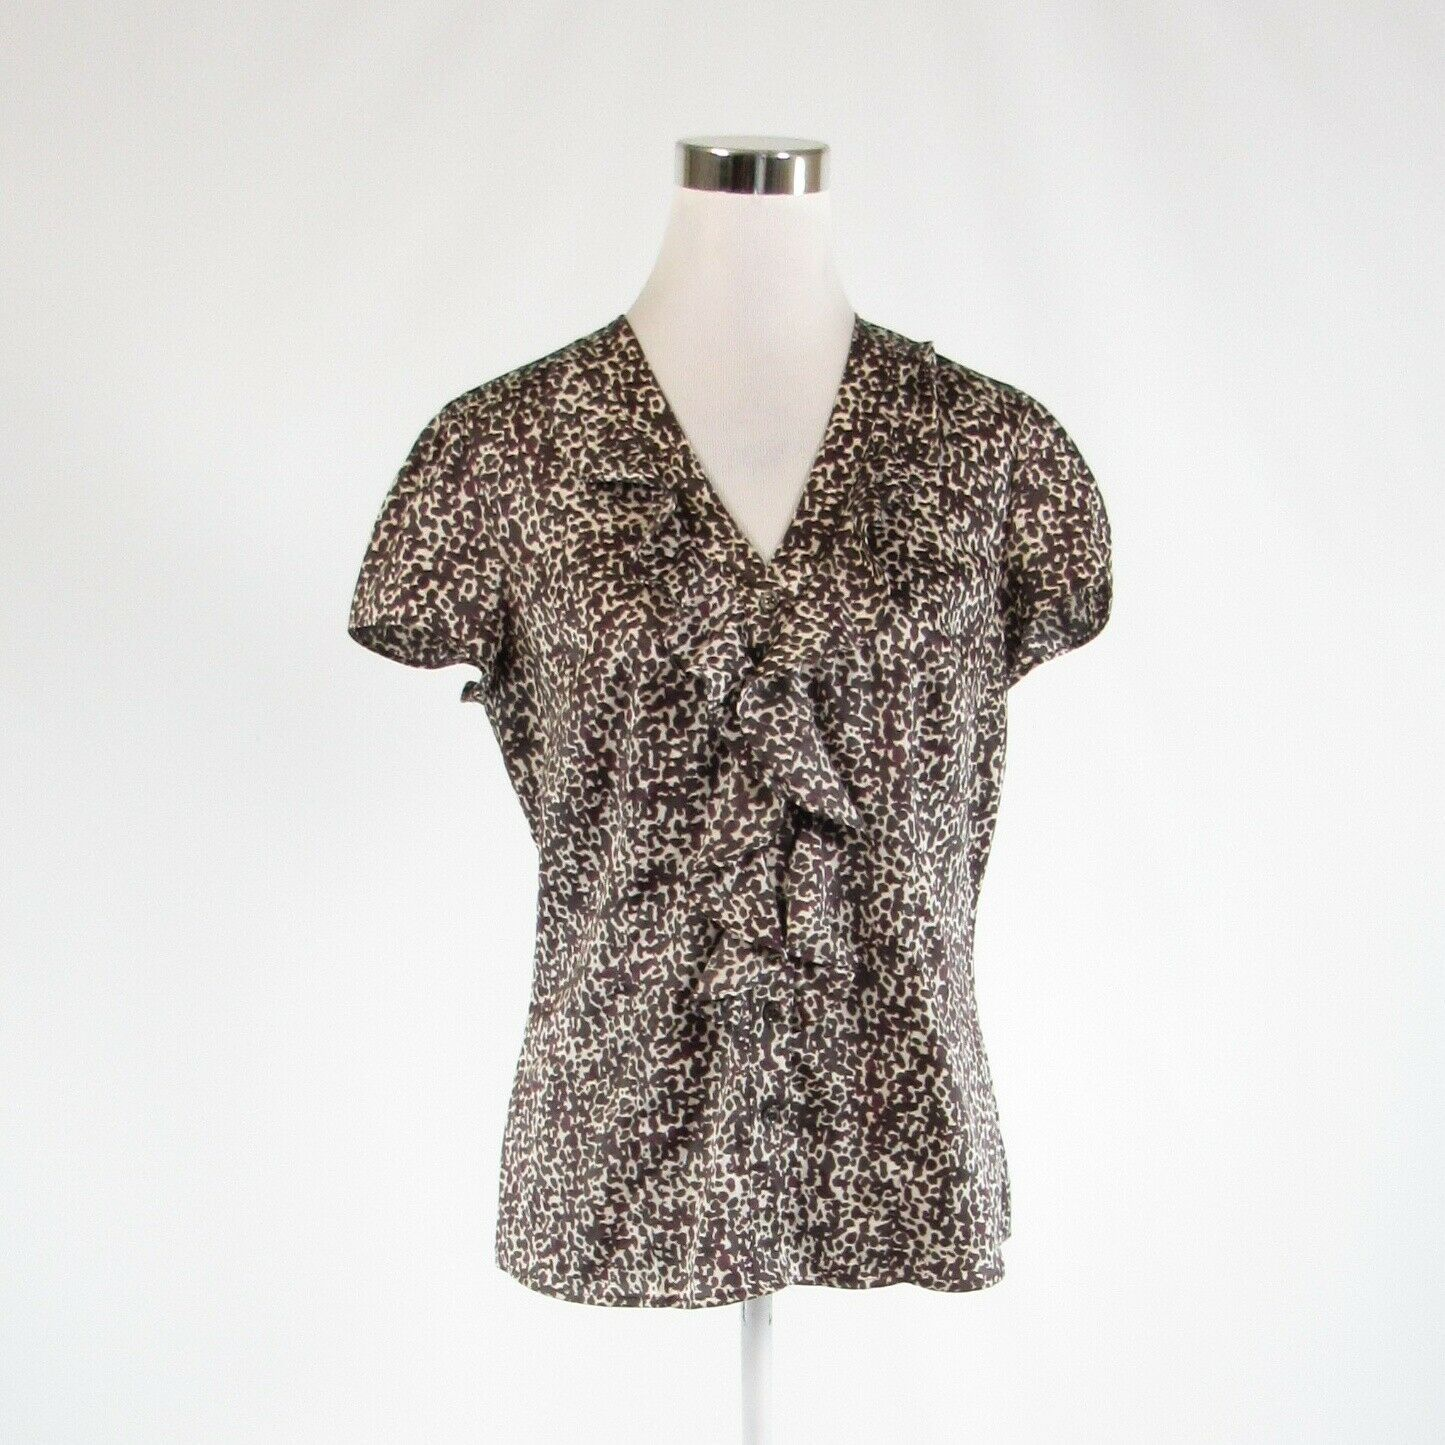 Primary image for Dark brown beige cheetah satin ANN TAYLOR cap sleeve button down blouse 6